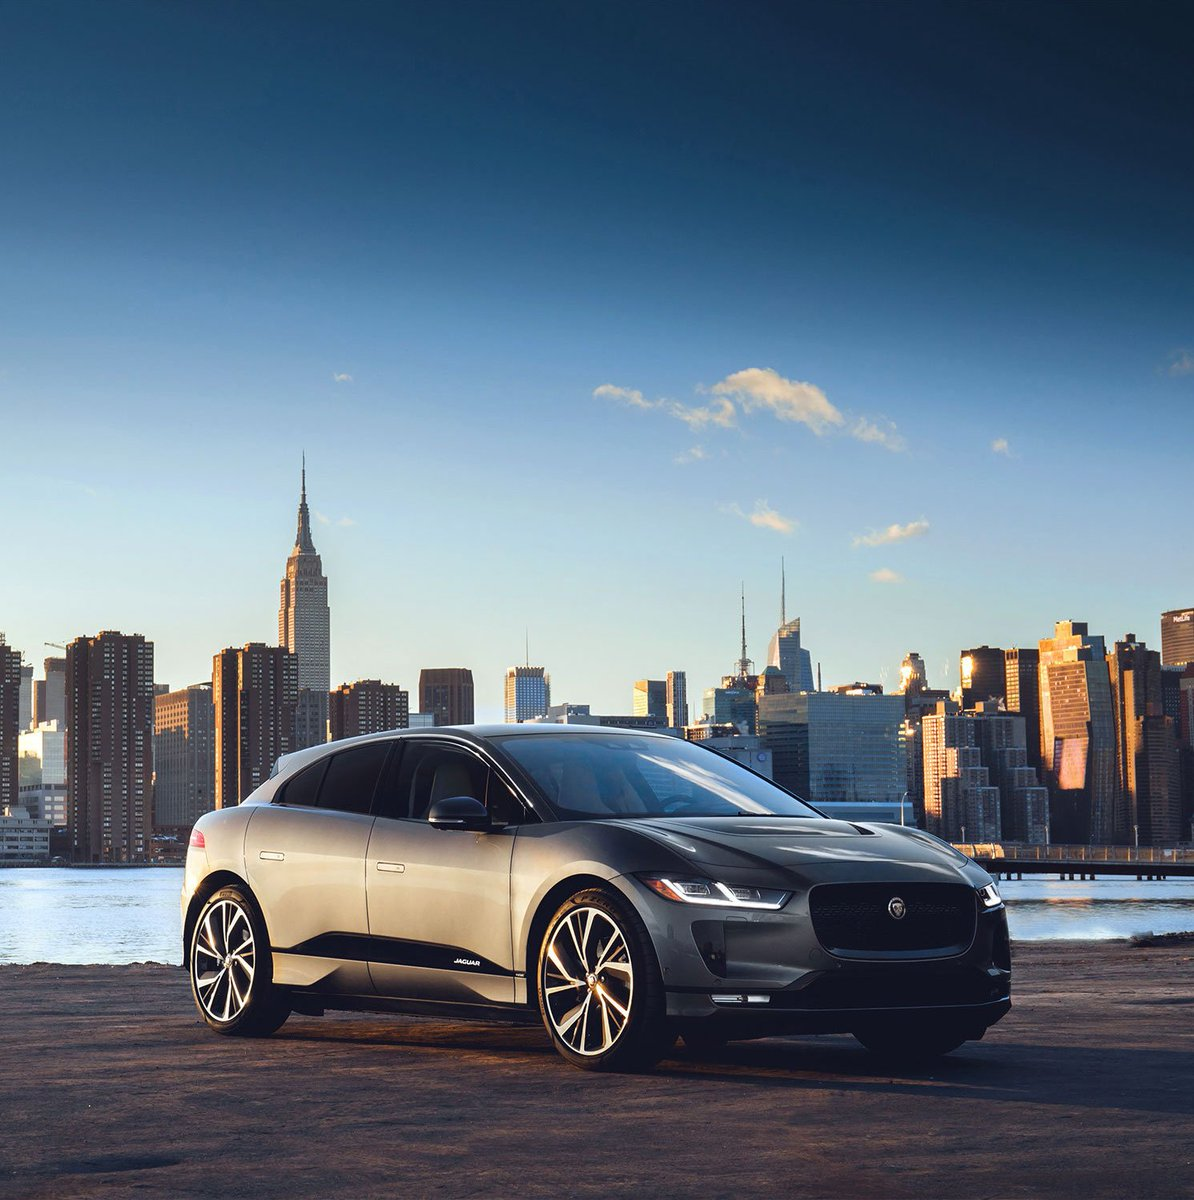 Exhilaration is now rechargeable. Roar silently with the New all-electric #Jaguar #IPACE. https://t.co/43b4ytwiYb